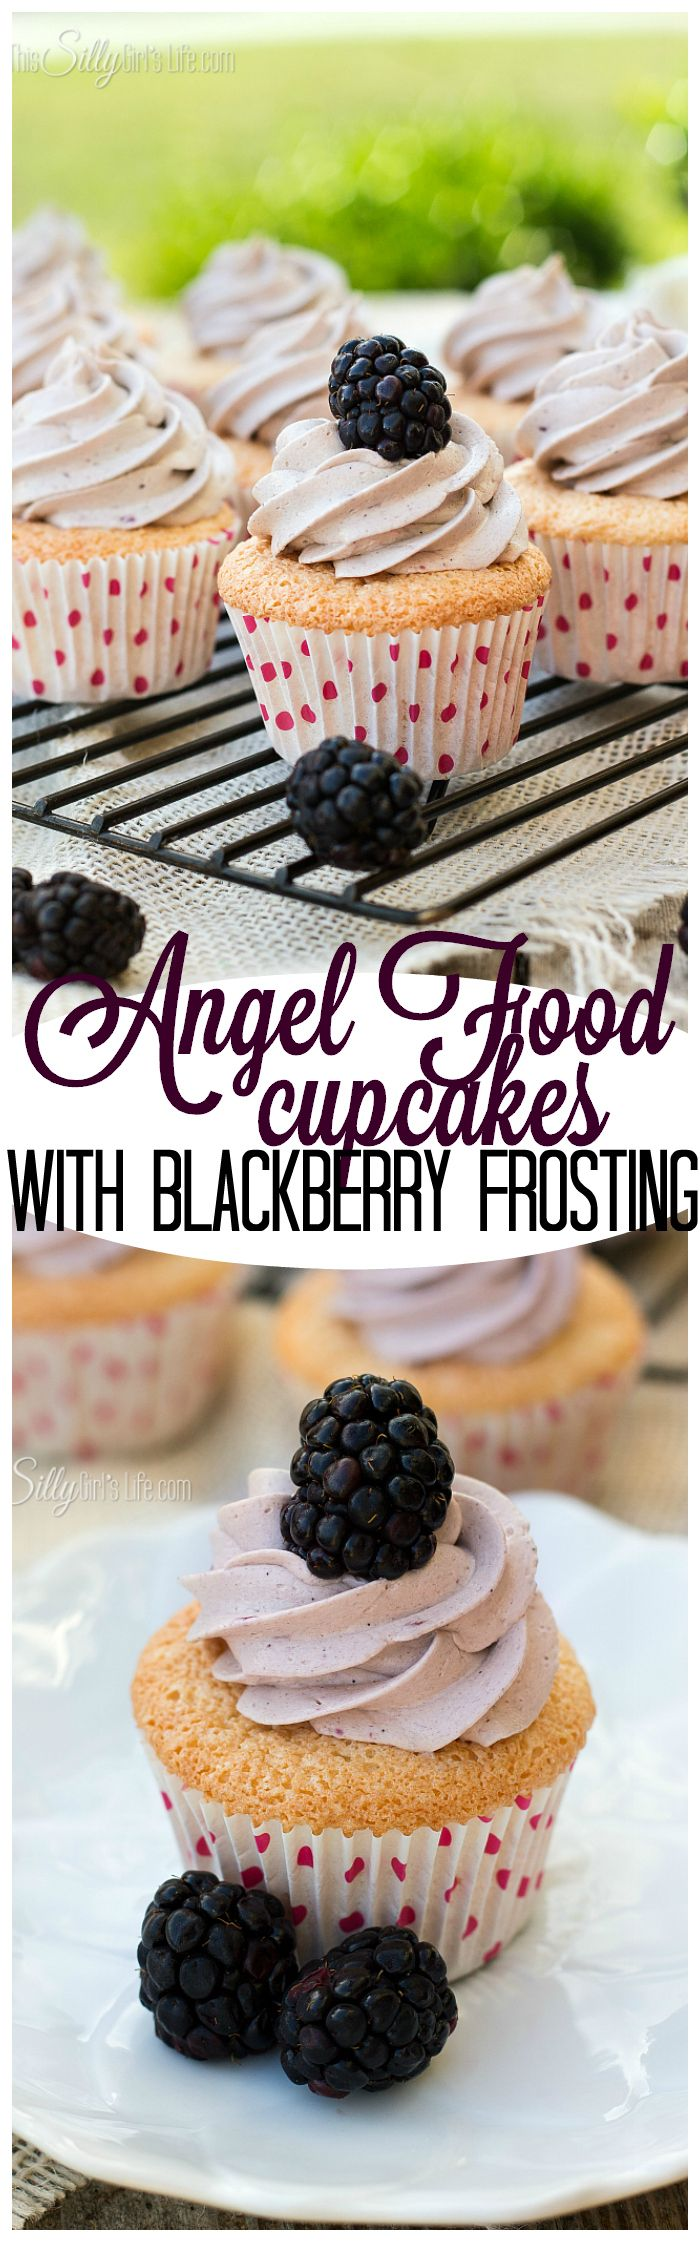 Angel+Food+Cupcakes+with+Blackberry+Frosting,+the+lightest,+airiest+from+scratch+angel+food+cupcakes+with+sinfully+sweet+and+smooth+blackberry+frosting.+Hello,+Summer!+-+ThisSillyGirlsLife.com